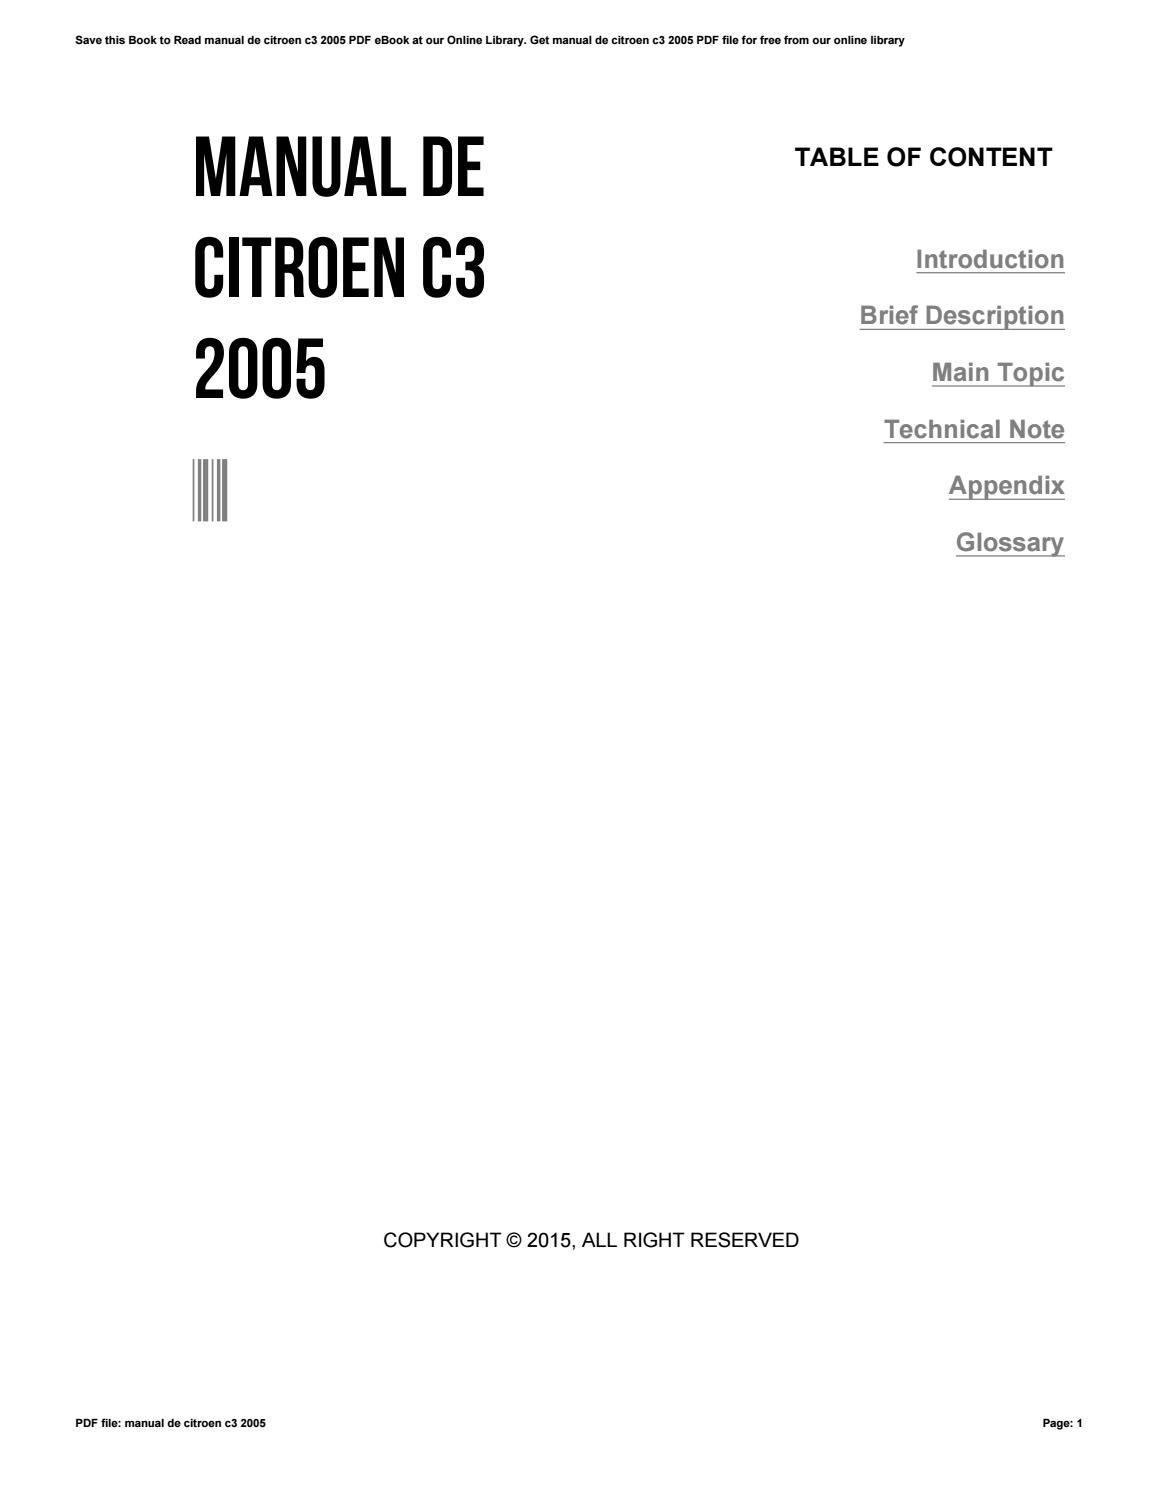 manual citroen c3 pdf espanol